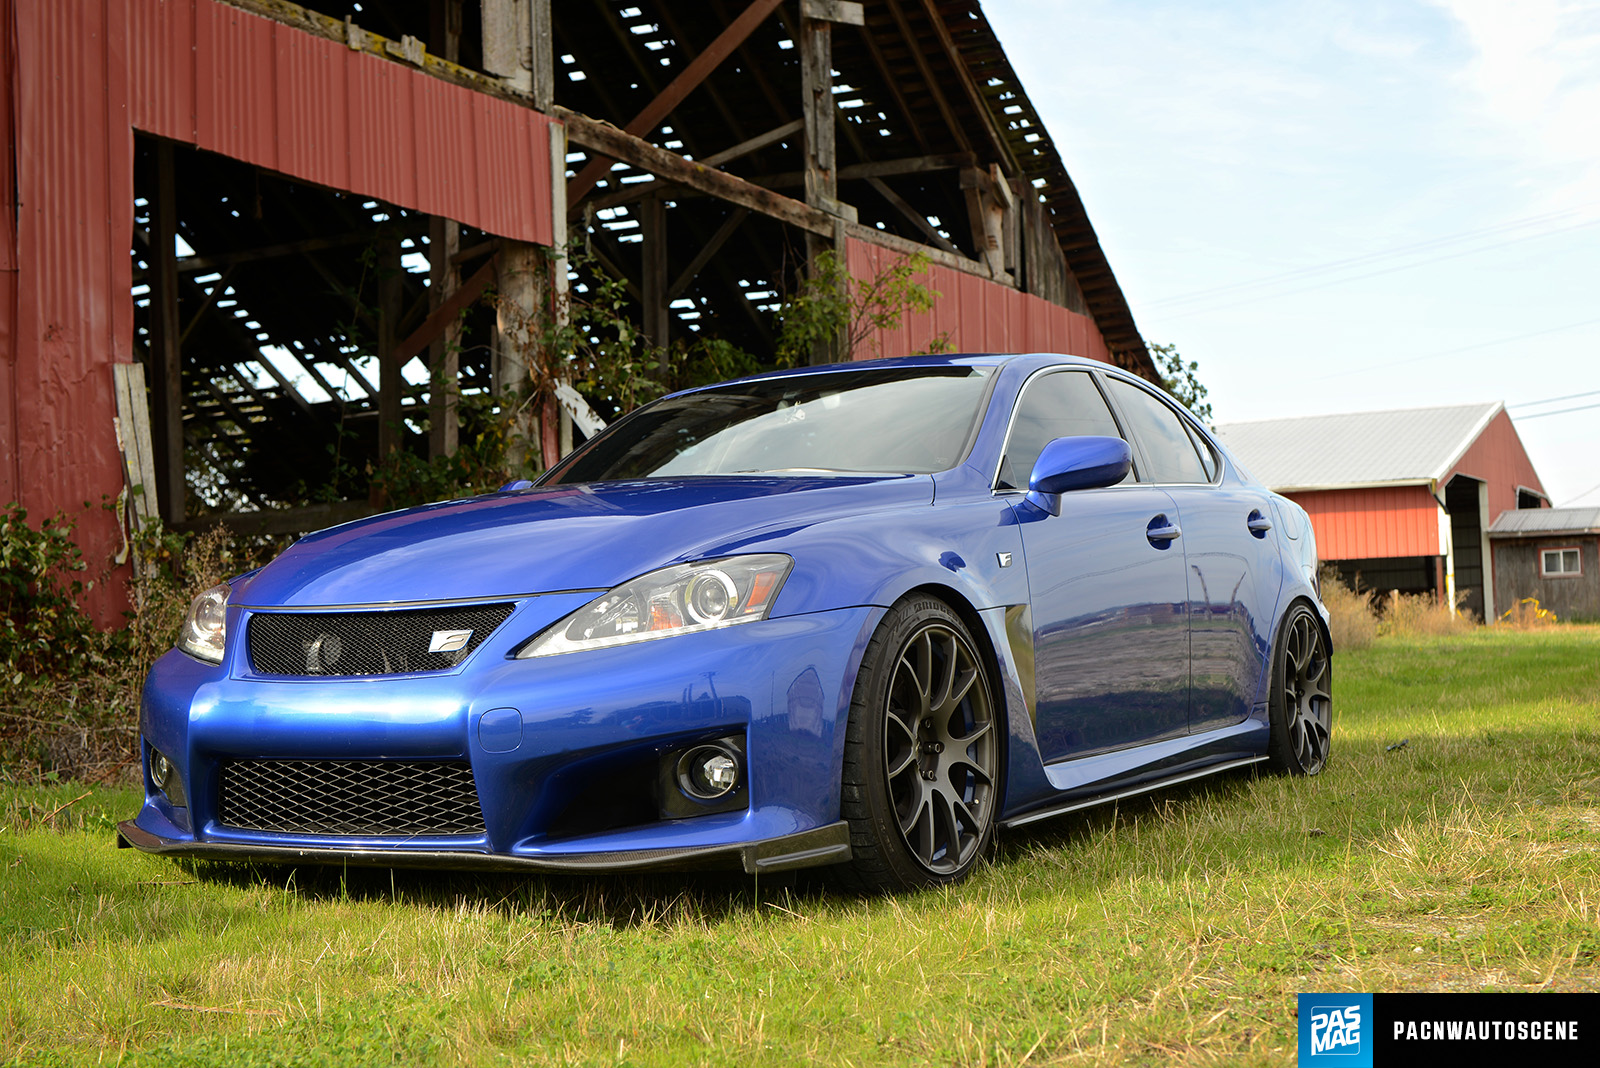 Beautiful Mark Berentson 2008 Lexus ISF TBGLIVE PASMAG 01